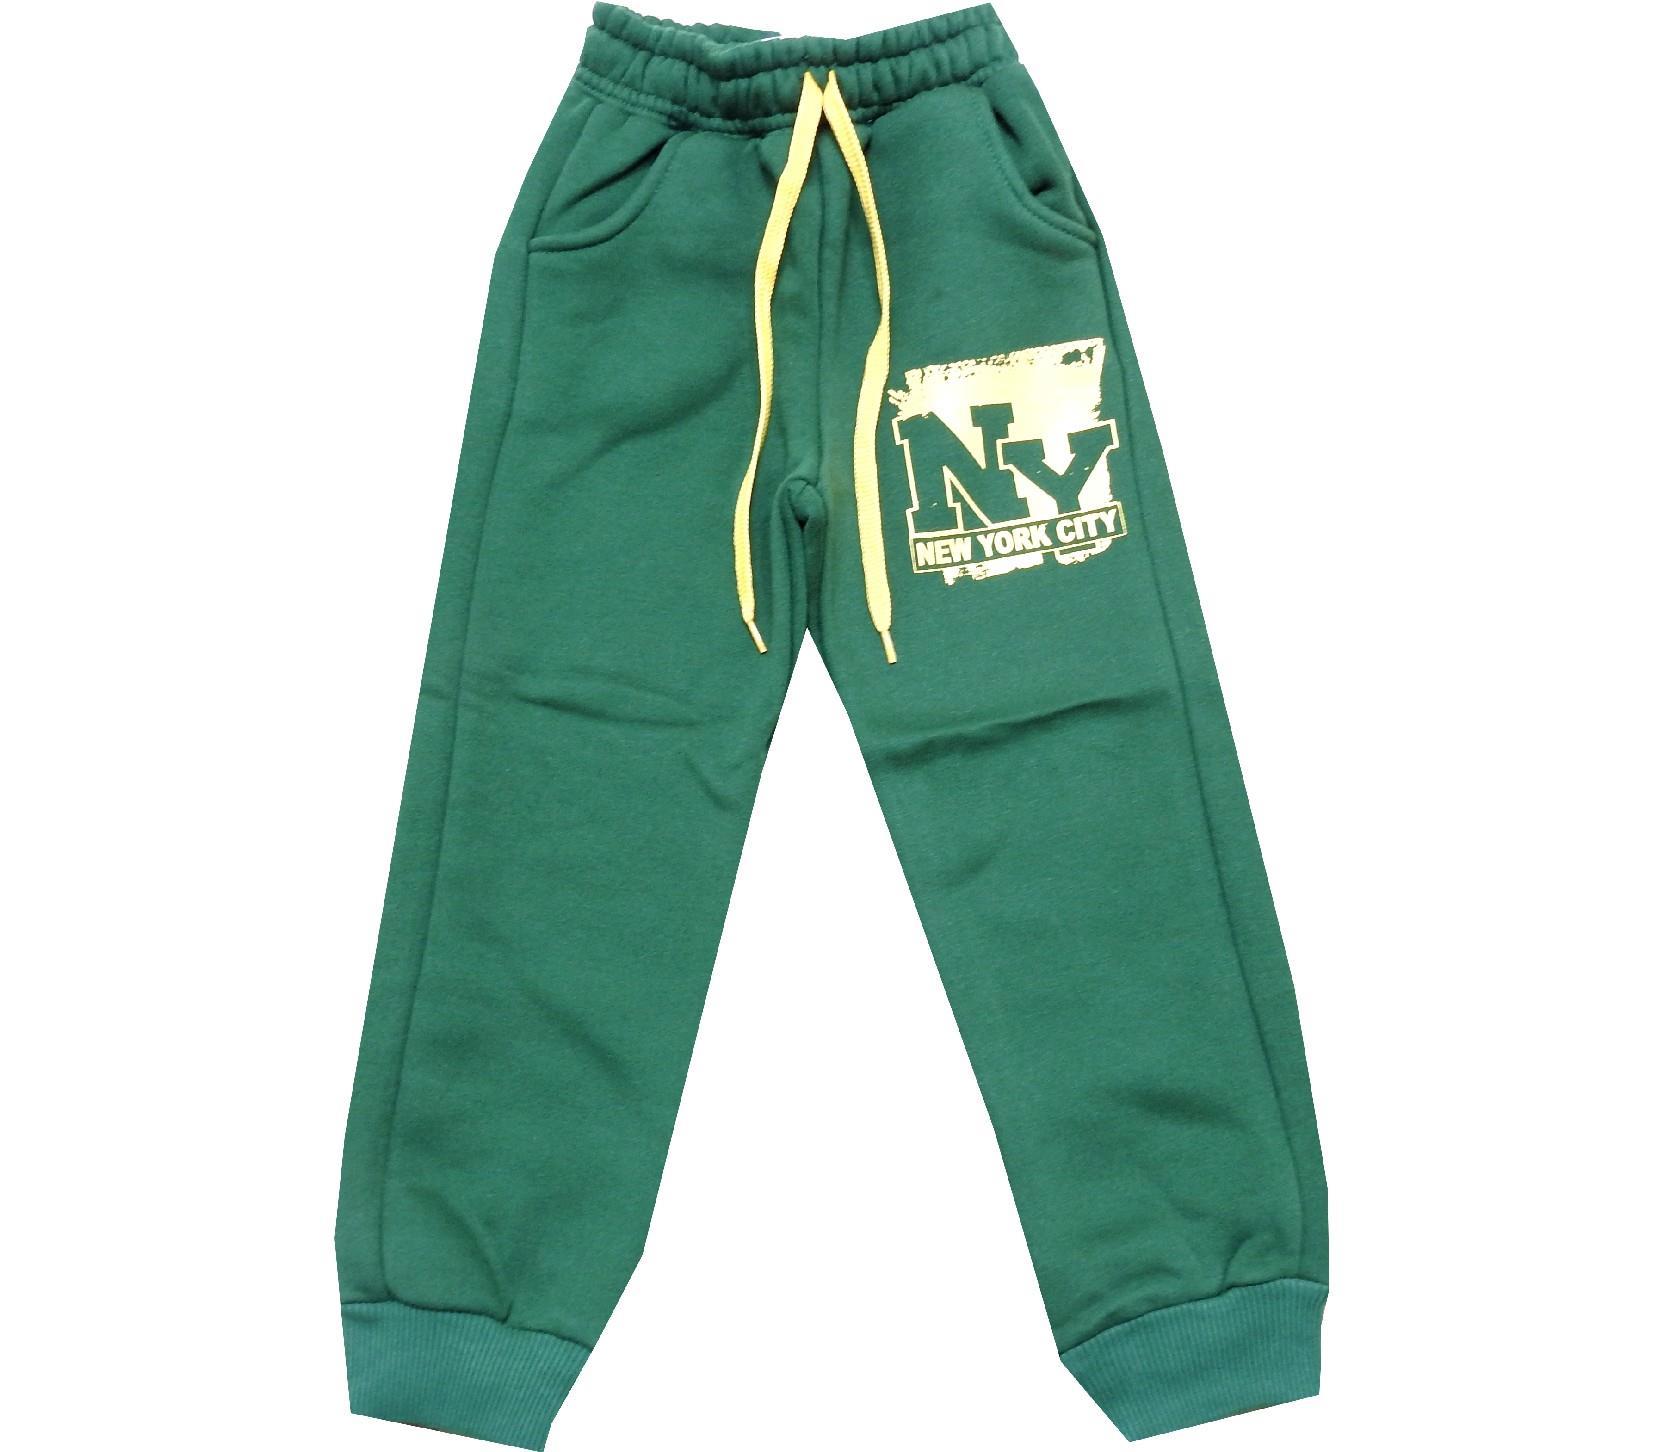 Wholesale NY print three-ply single pant for boy (5-6-7-8 age)